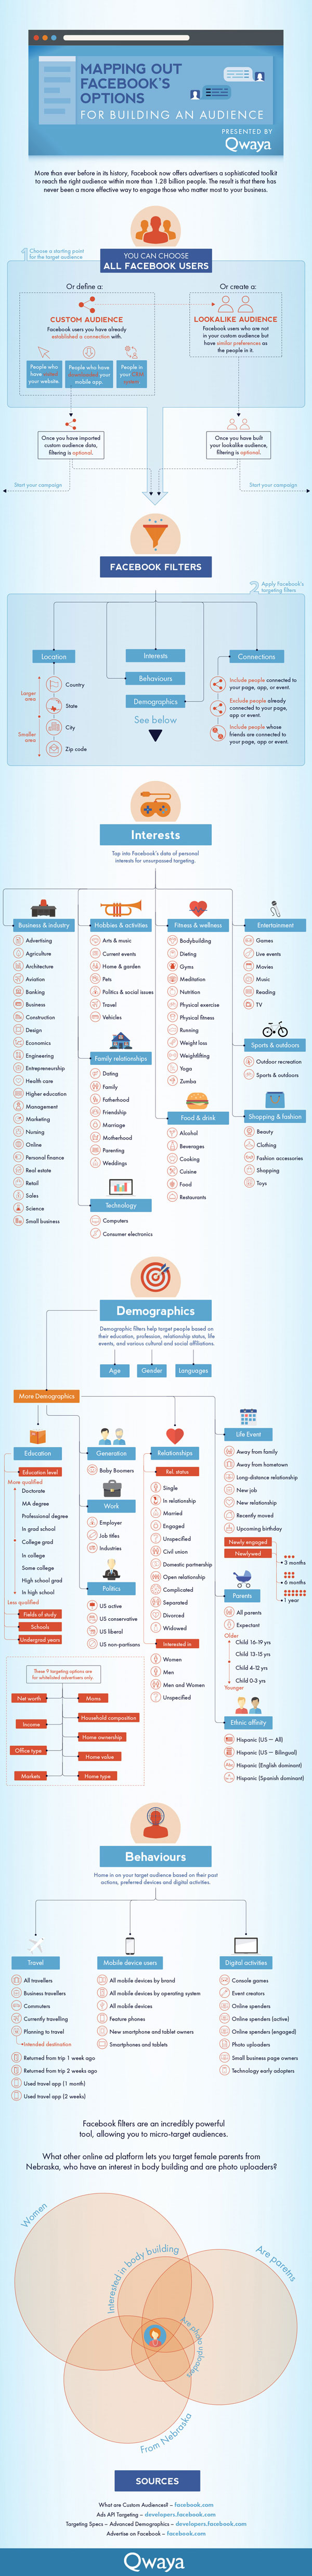 Mapping-out-facebooks-options-for-blog-[infographic]